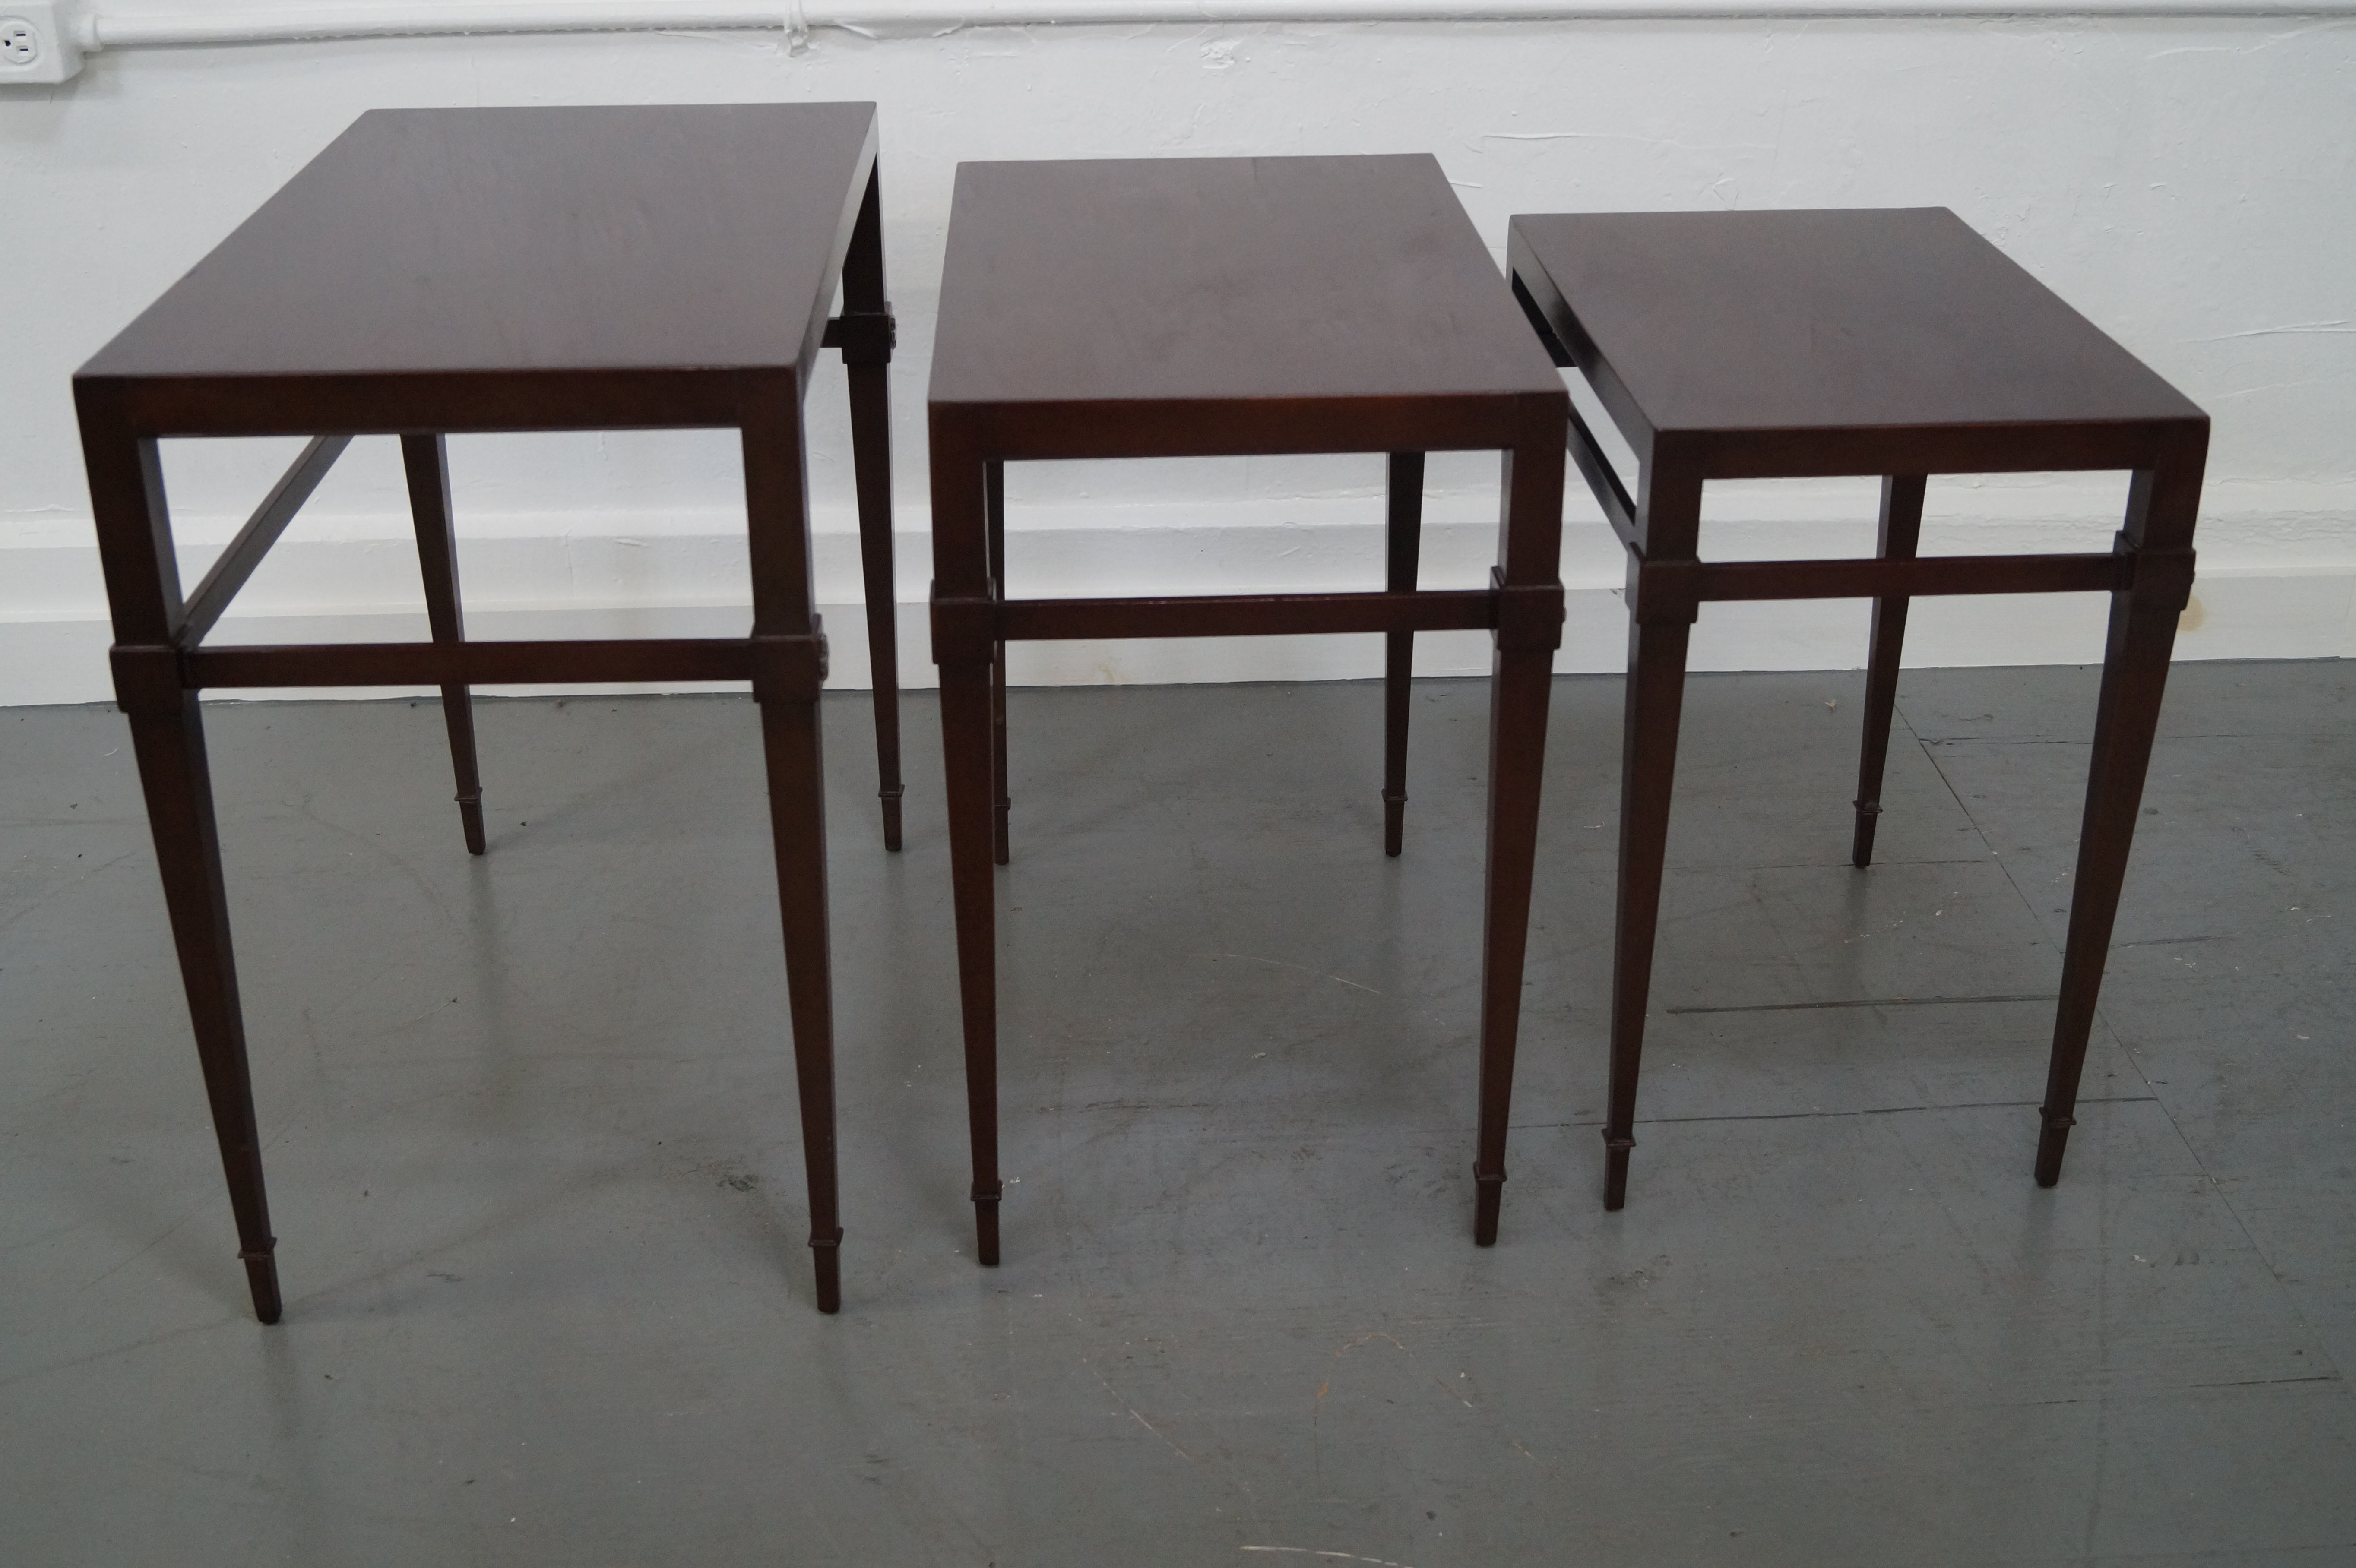 Exceptional Tommi Parzinger Mahogany Nesting Tables   Set Of 3   Image 2 Of 10